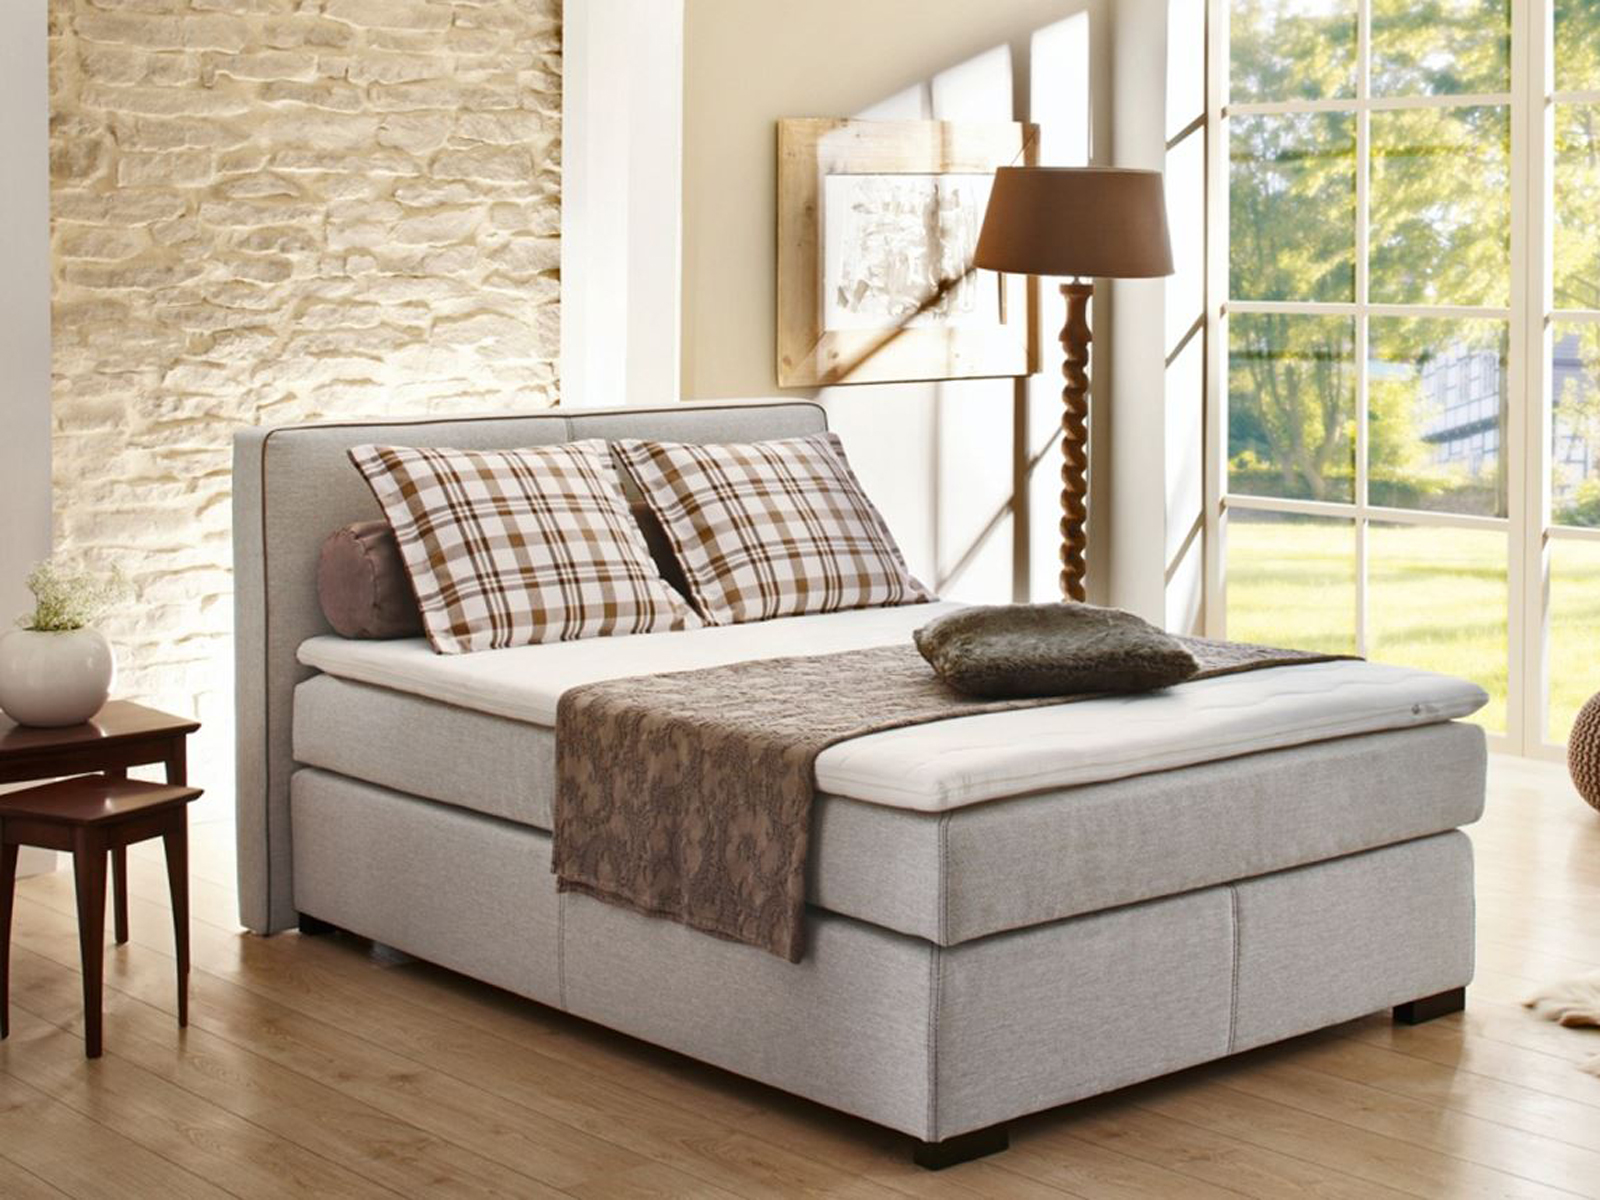 boxspring bett romantica doppelbett hotelbett lava und beige inkl topper 140x200 ebay. Black Bedroom Furniture Sets. Home Design Ideas